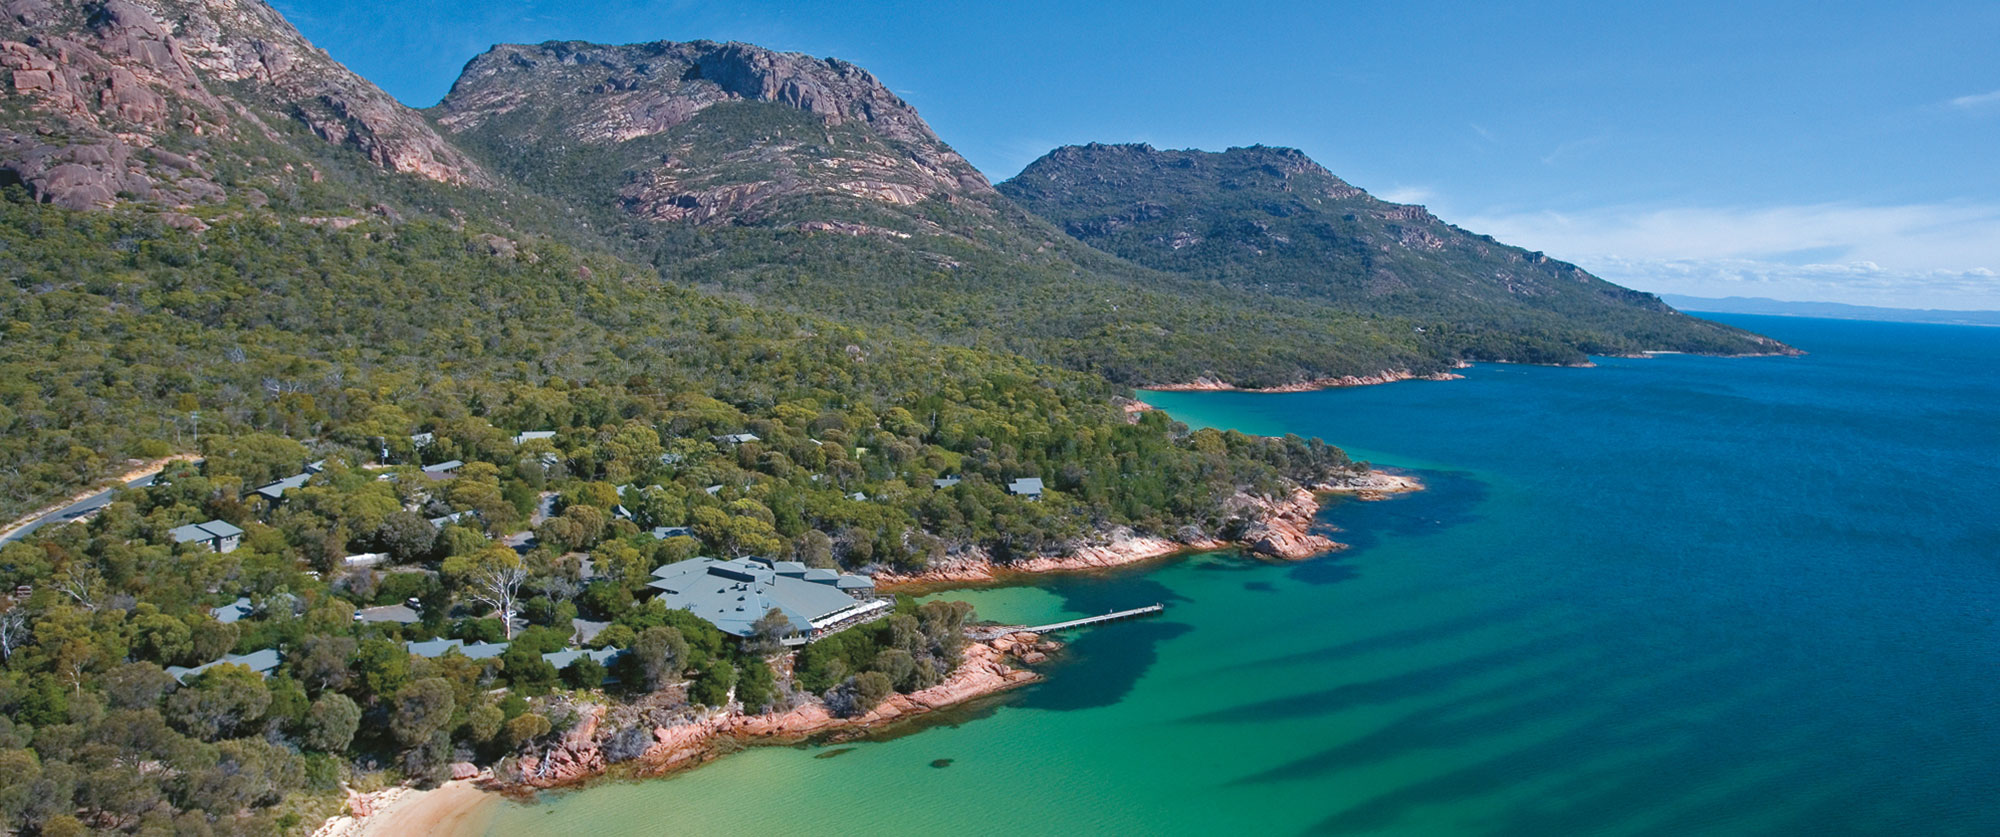 Best of Tasmania Vacations: Highlights of Tasmania - Freycinet National Park